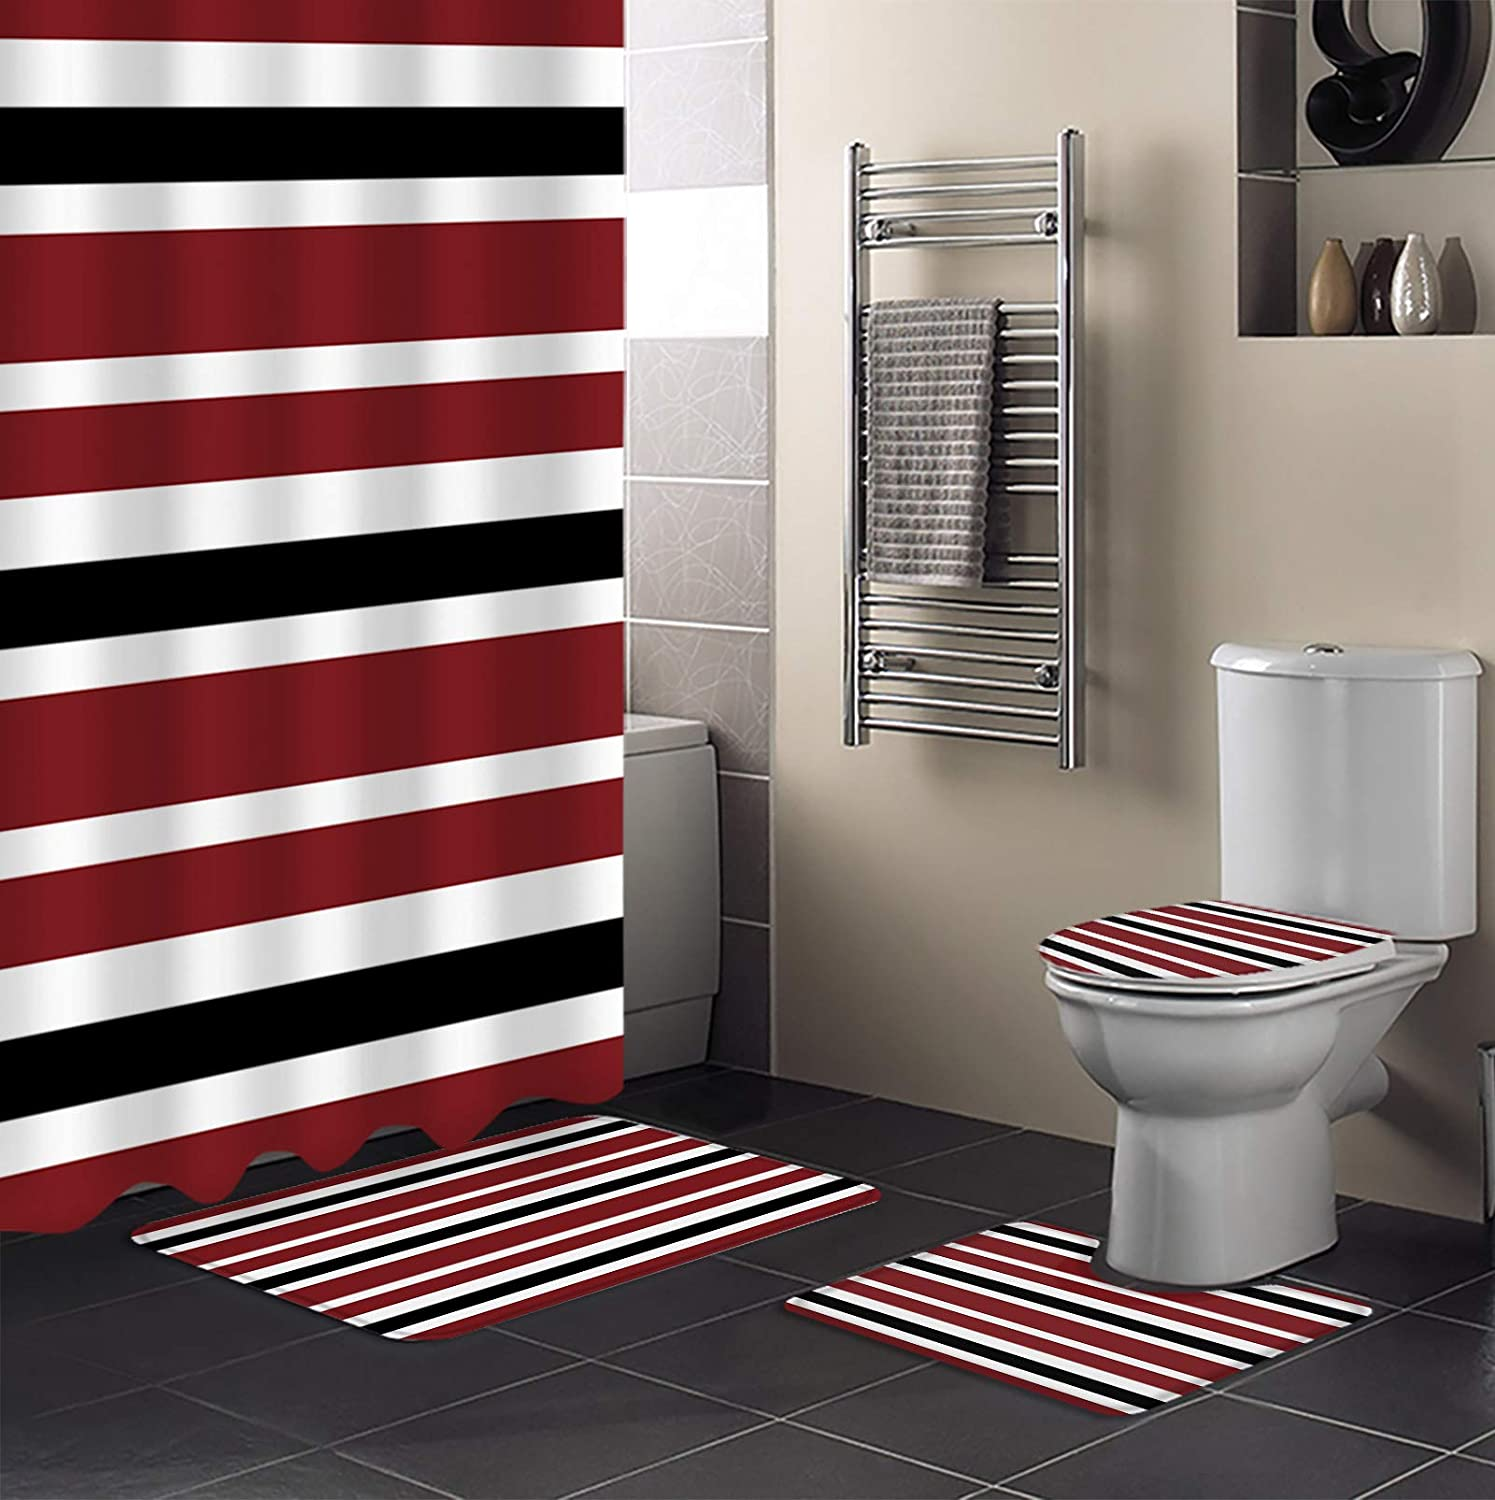 4 Piece Shower Curtain gift OFFicial site Sets 72